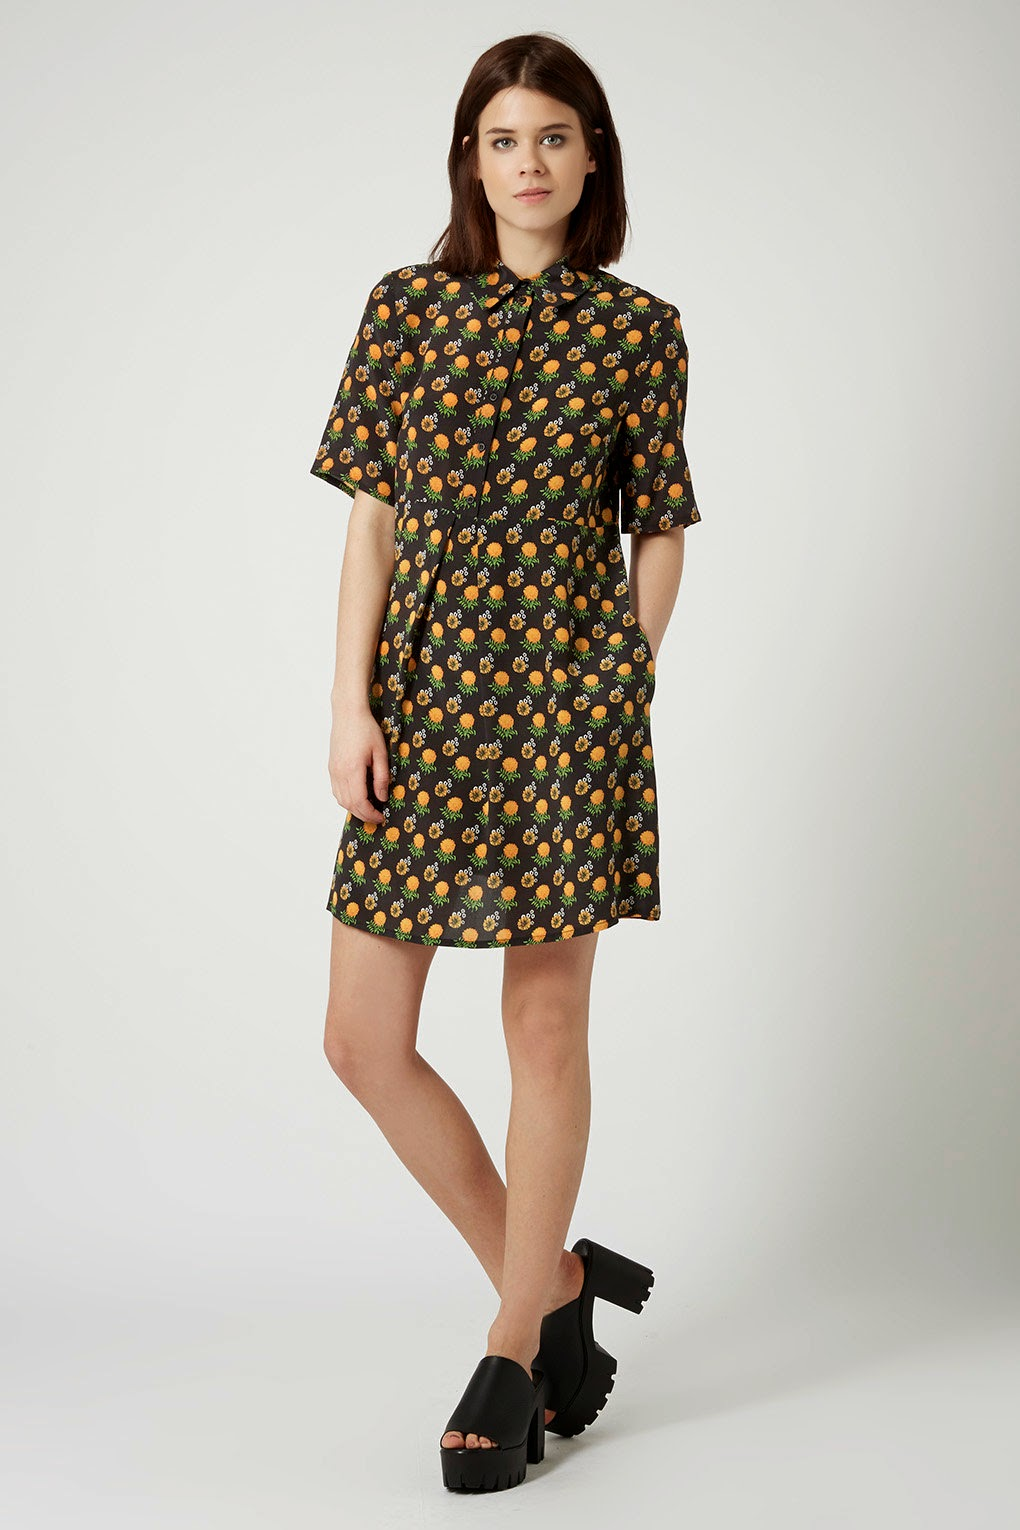 marigold flower dress, topshop boutique shirt dress,